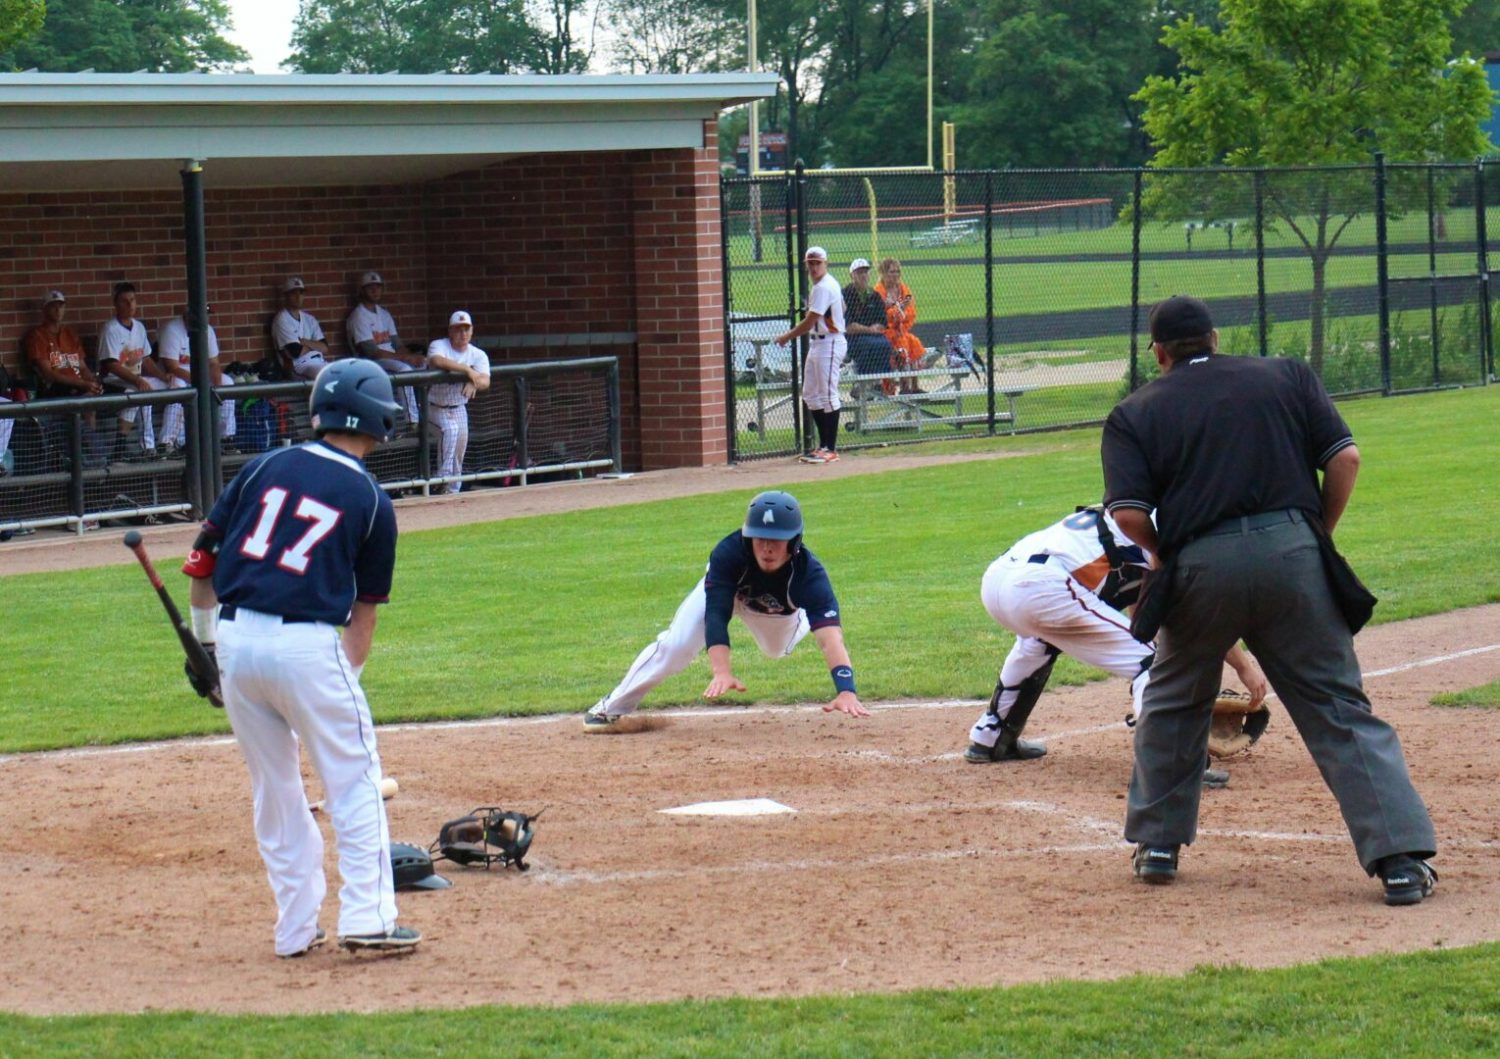 Mandes' ninth-inning single gives Muskegon Clippers a dramatic 4-3 win over Holland